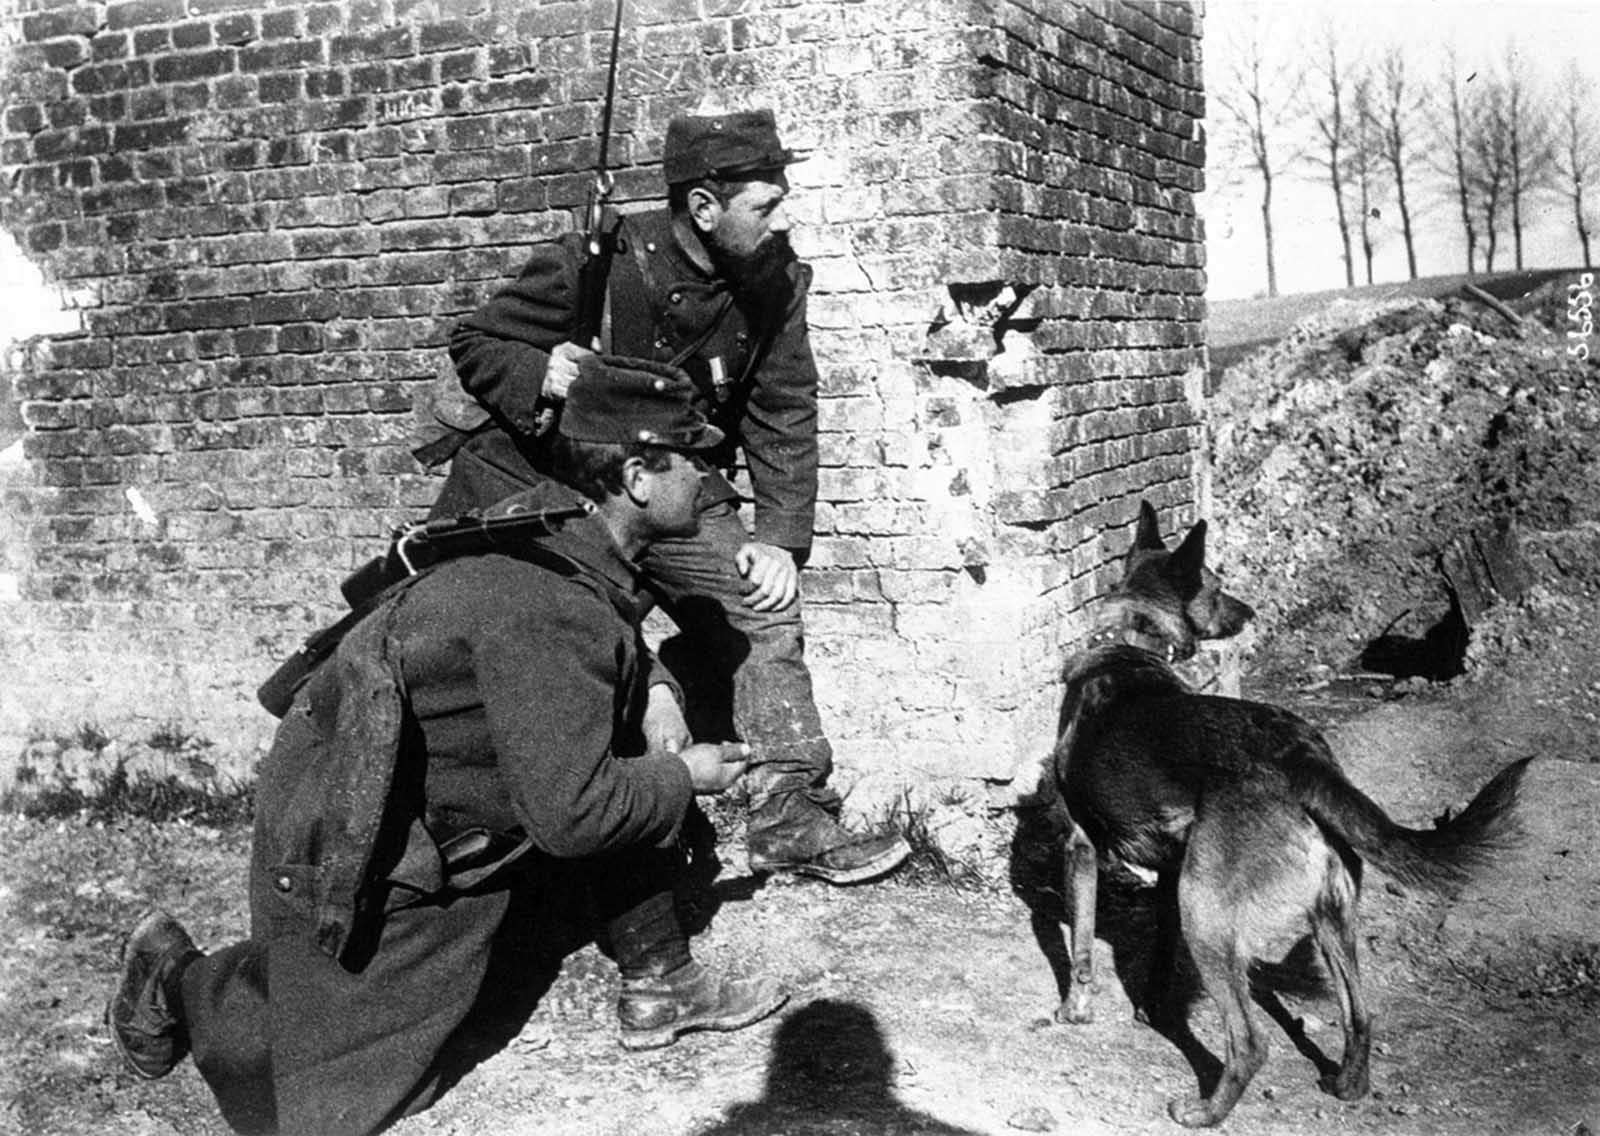 A dog trained to search for wounded soldiers while under fire, 1915.